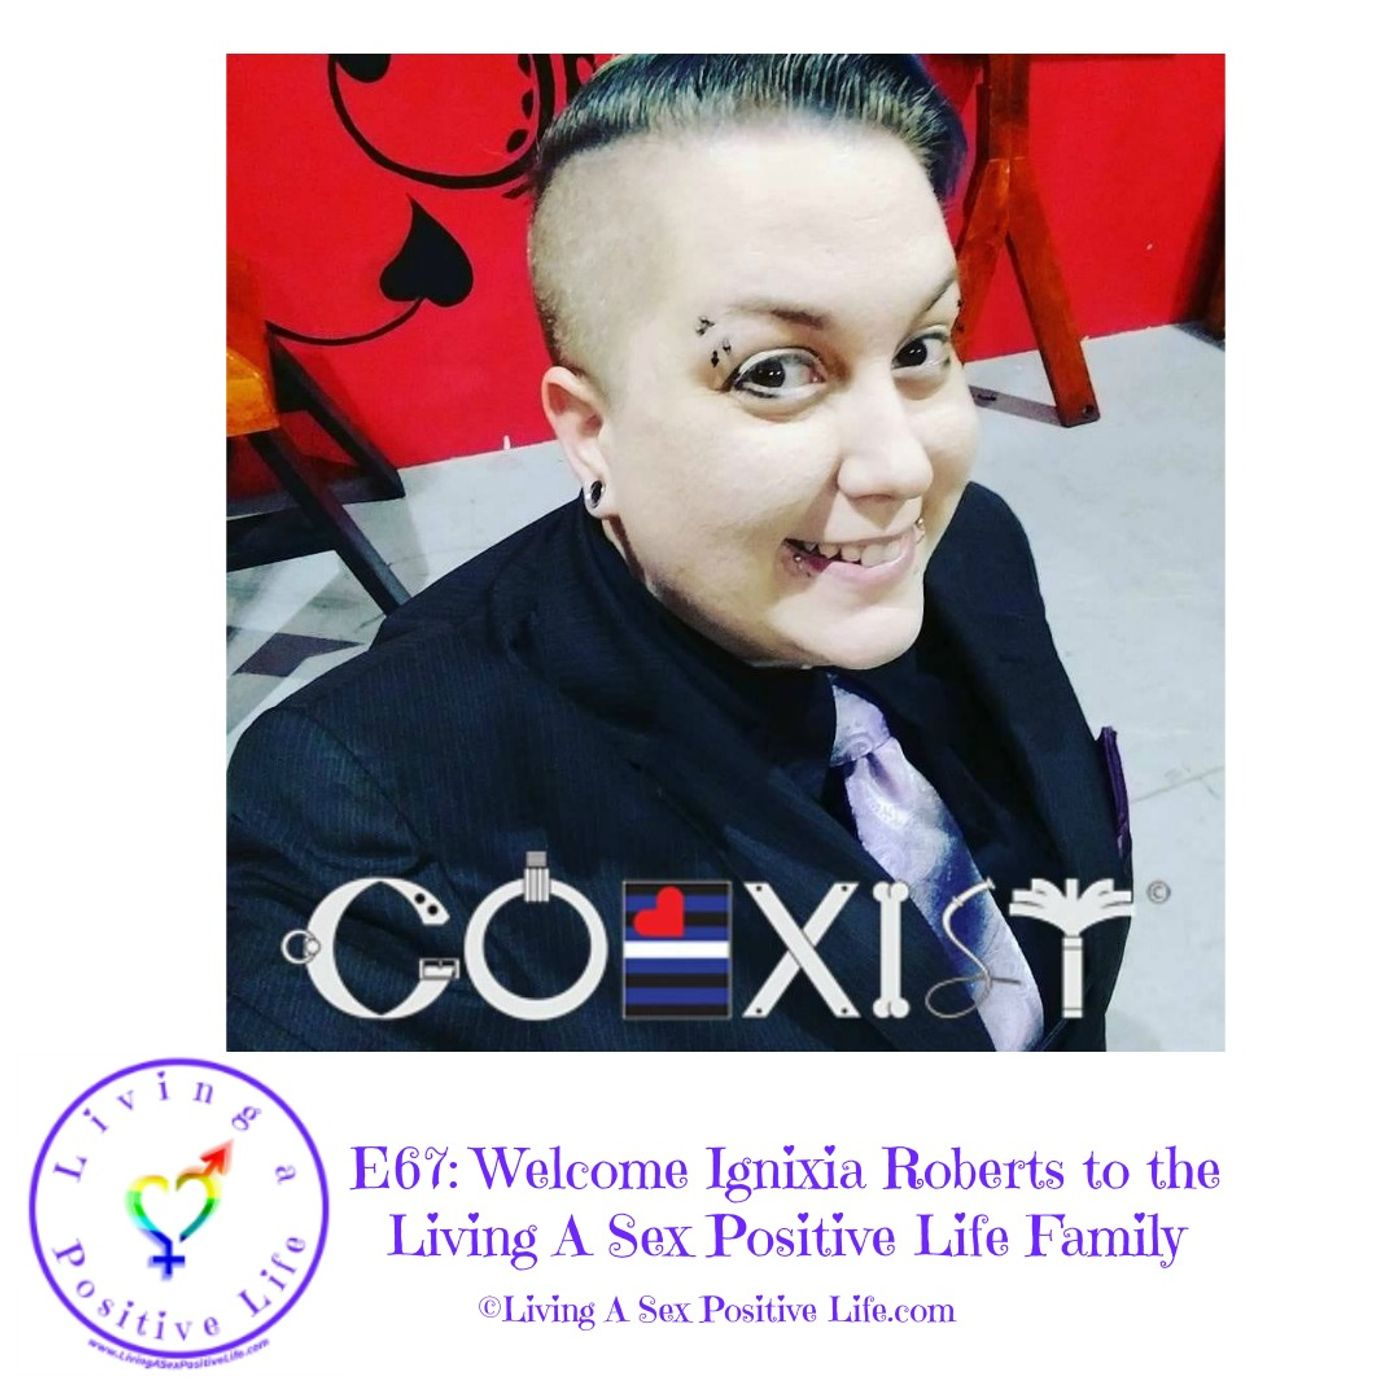 Sex Positive Me - E67: Welcome Ignixia Roberts to the Living A Sex Positive Life Family